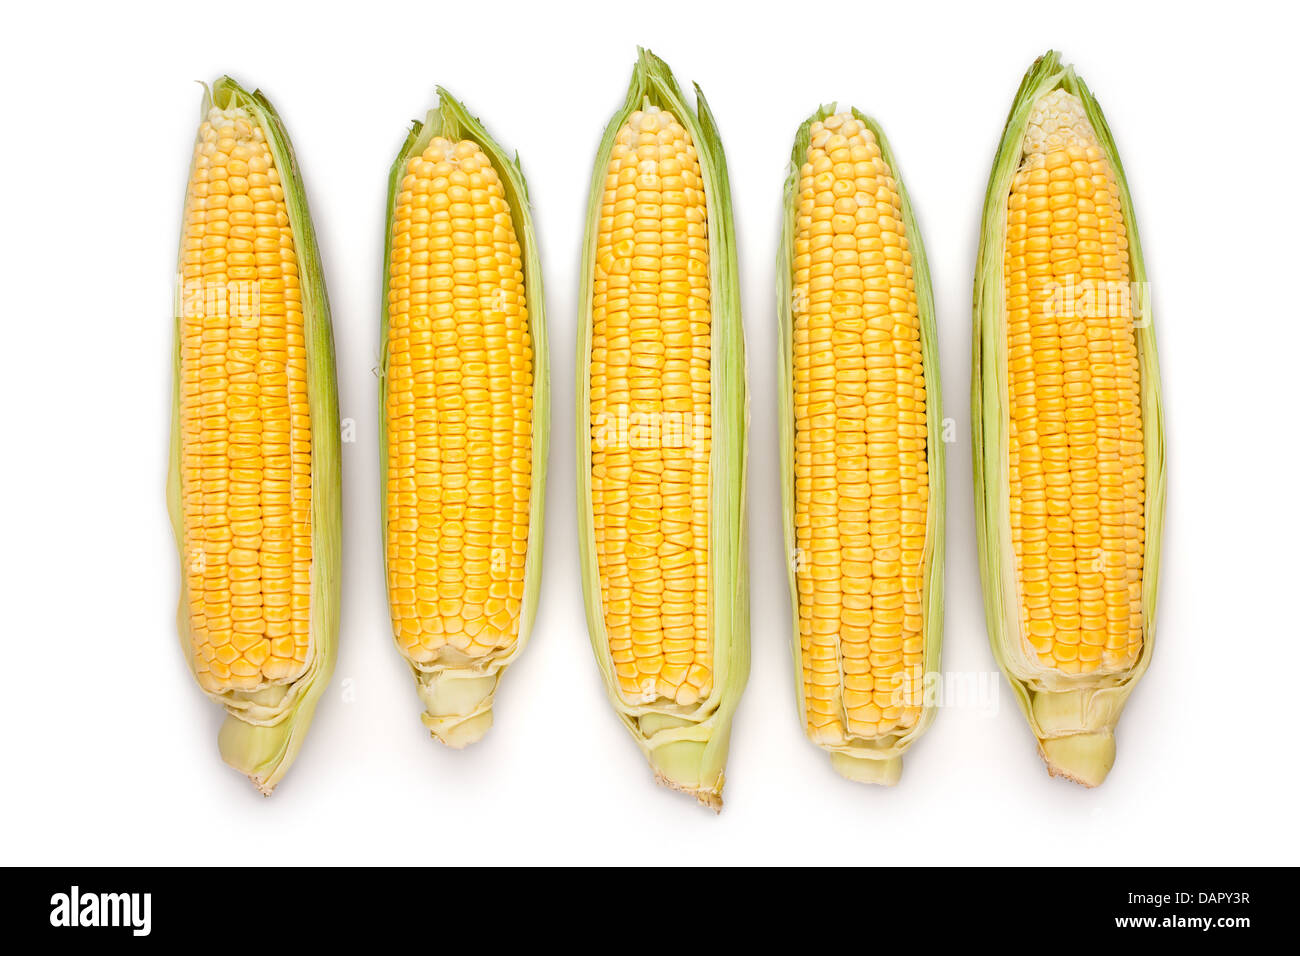 corn ear group on white background - Stock Image